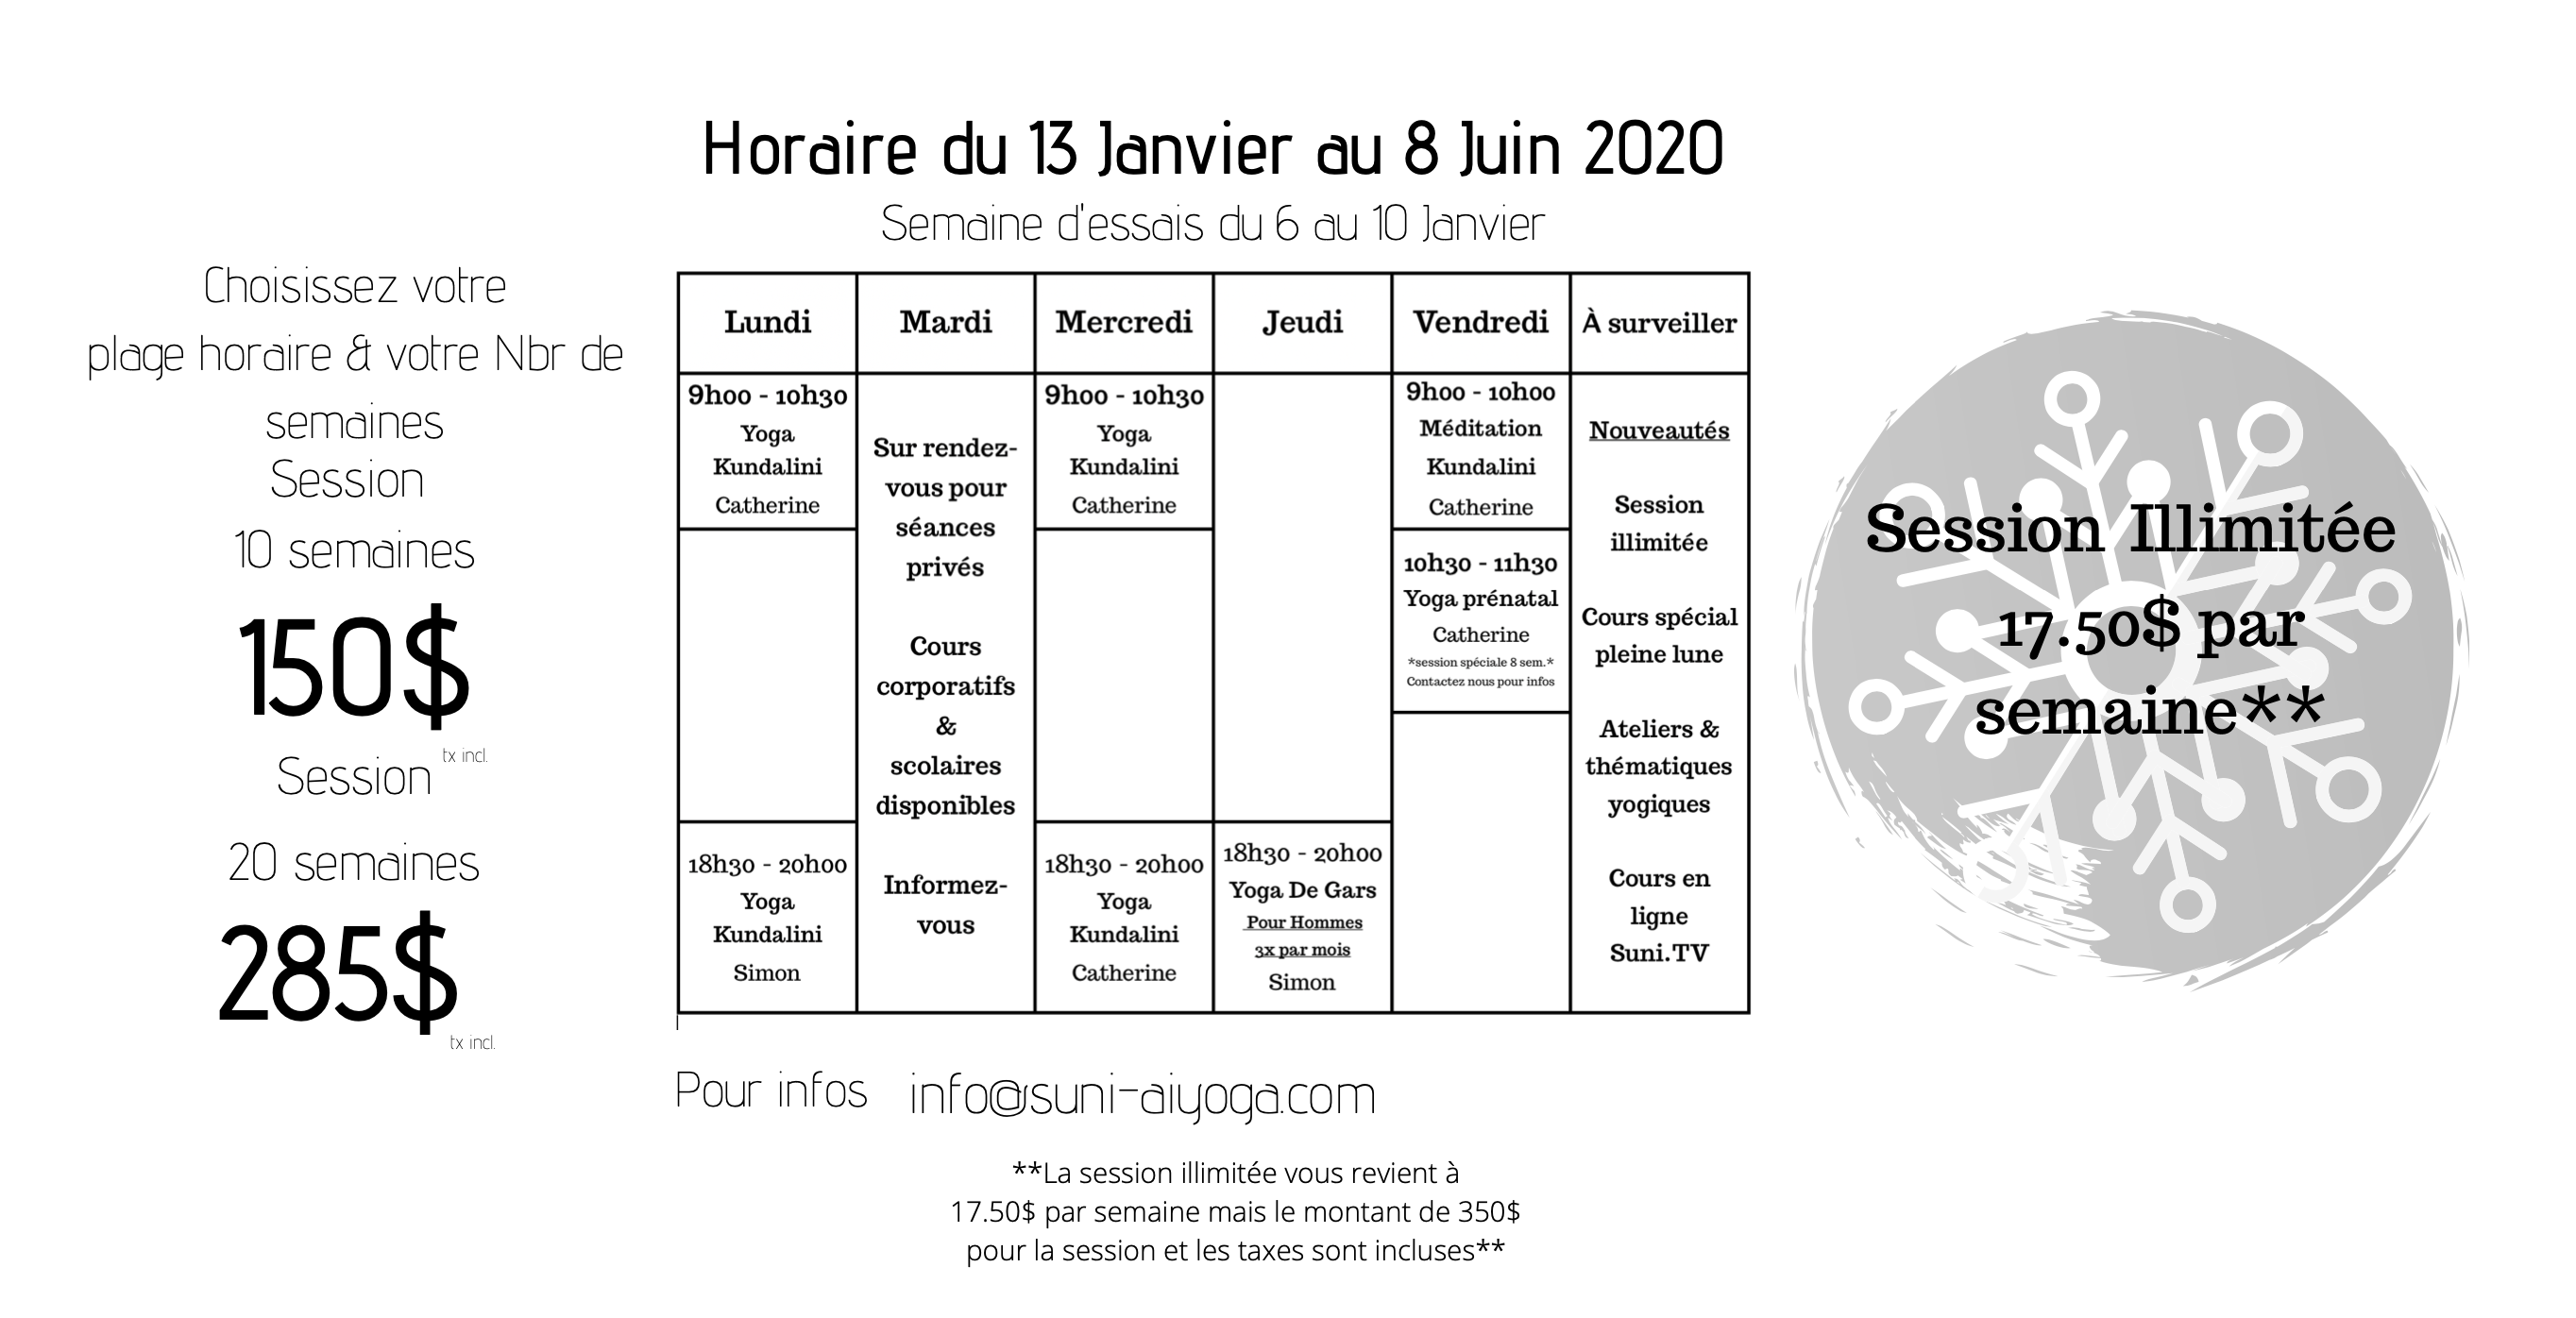 Horaire hiver 2020